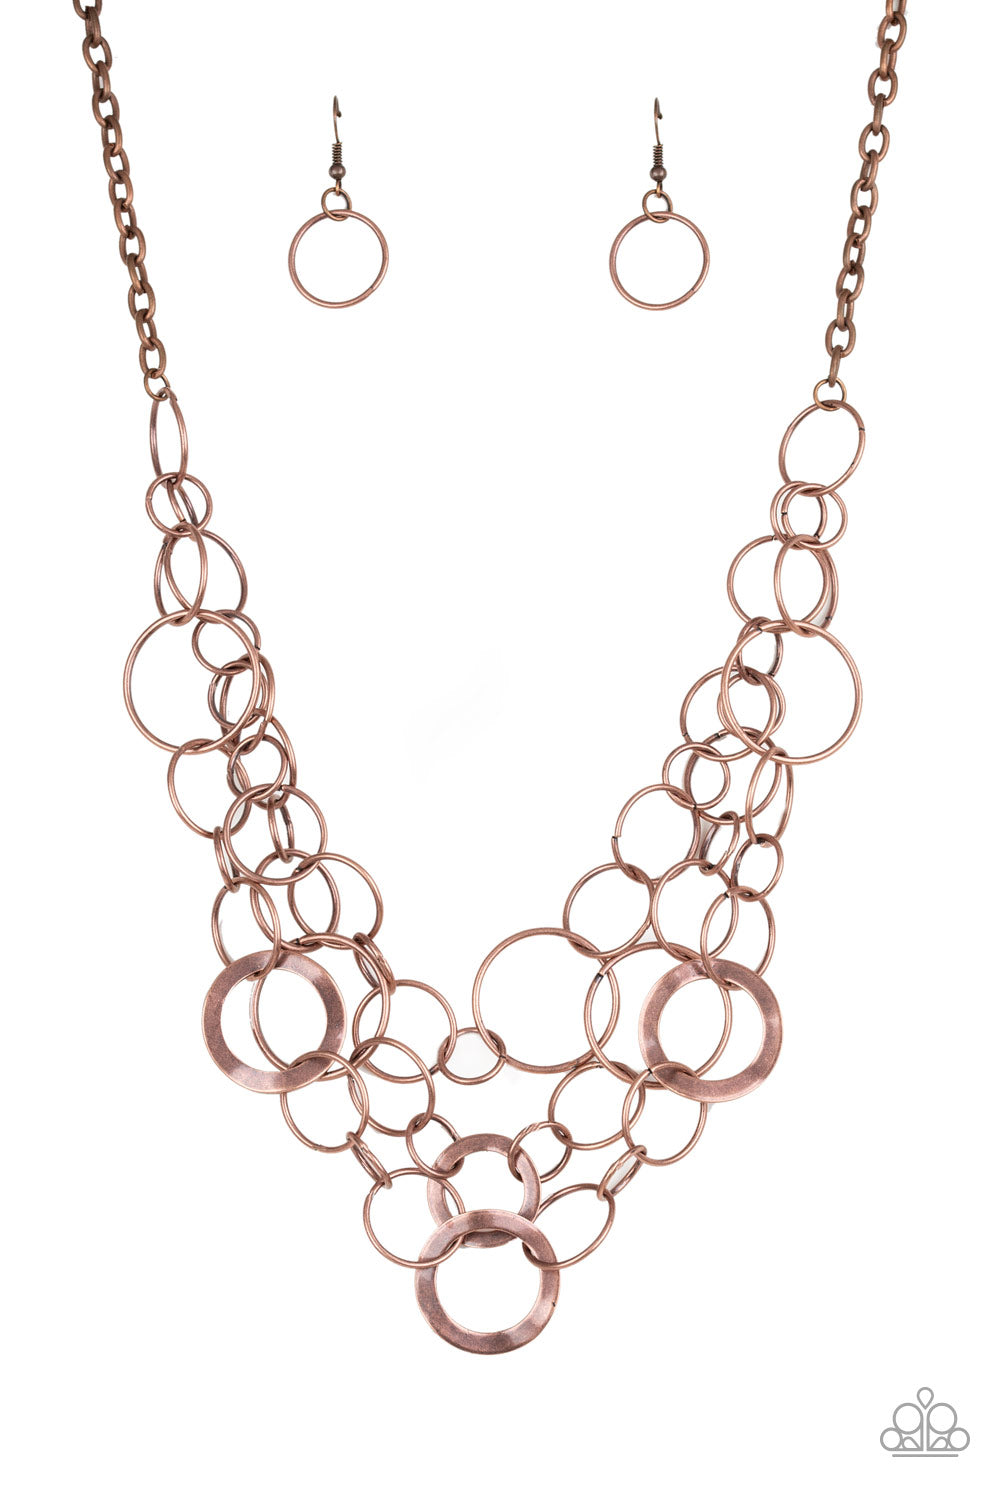 Paparazzi Necklace-Main Street Mechanics-Copper